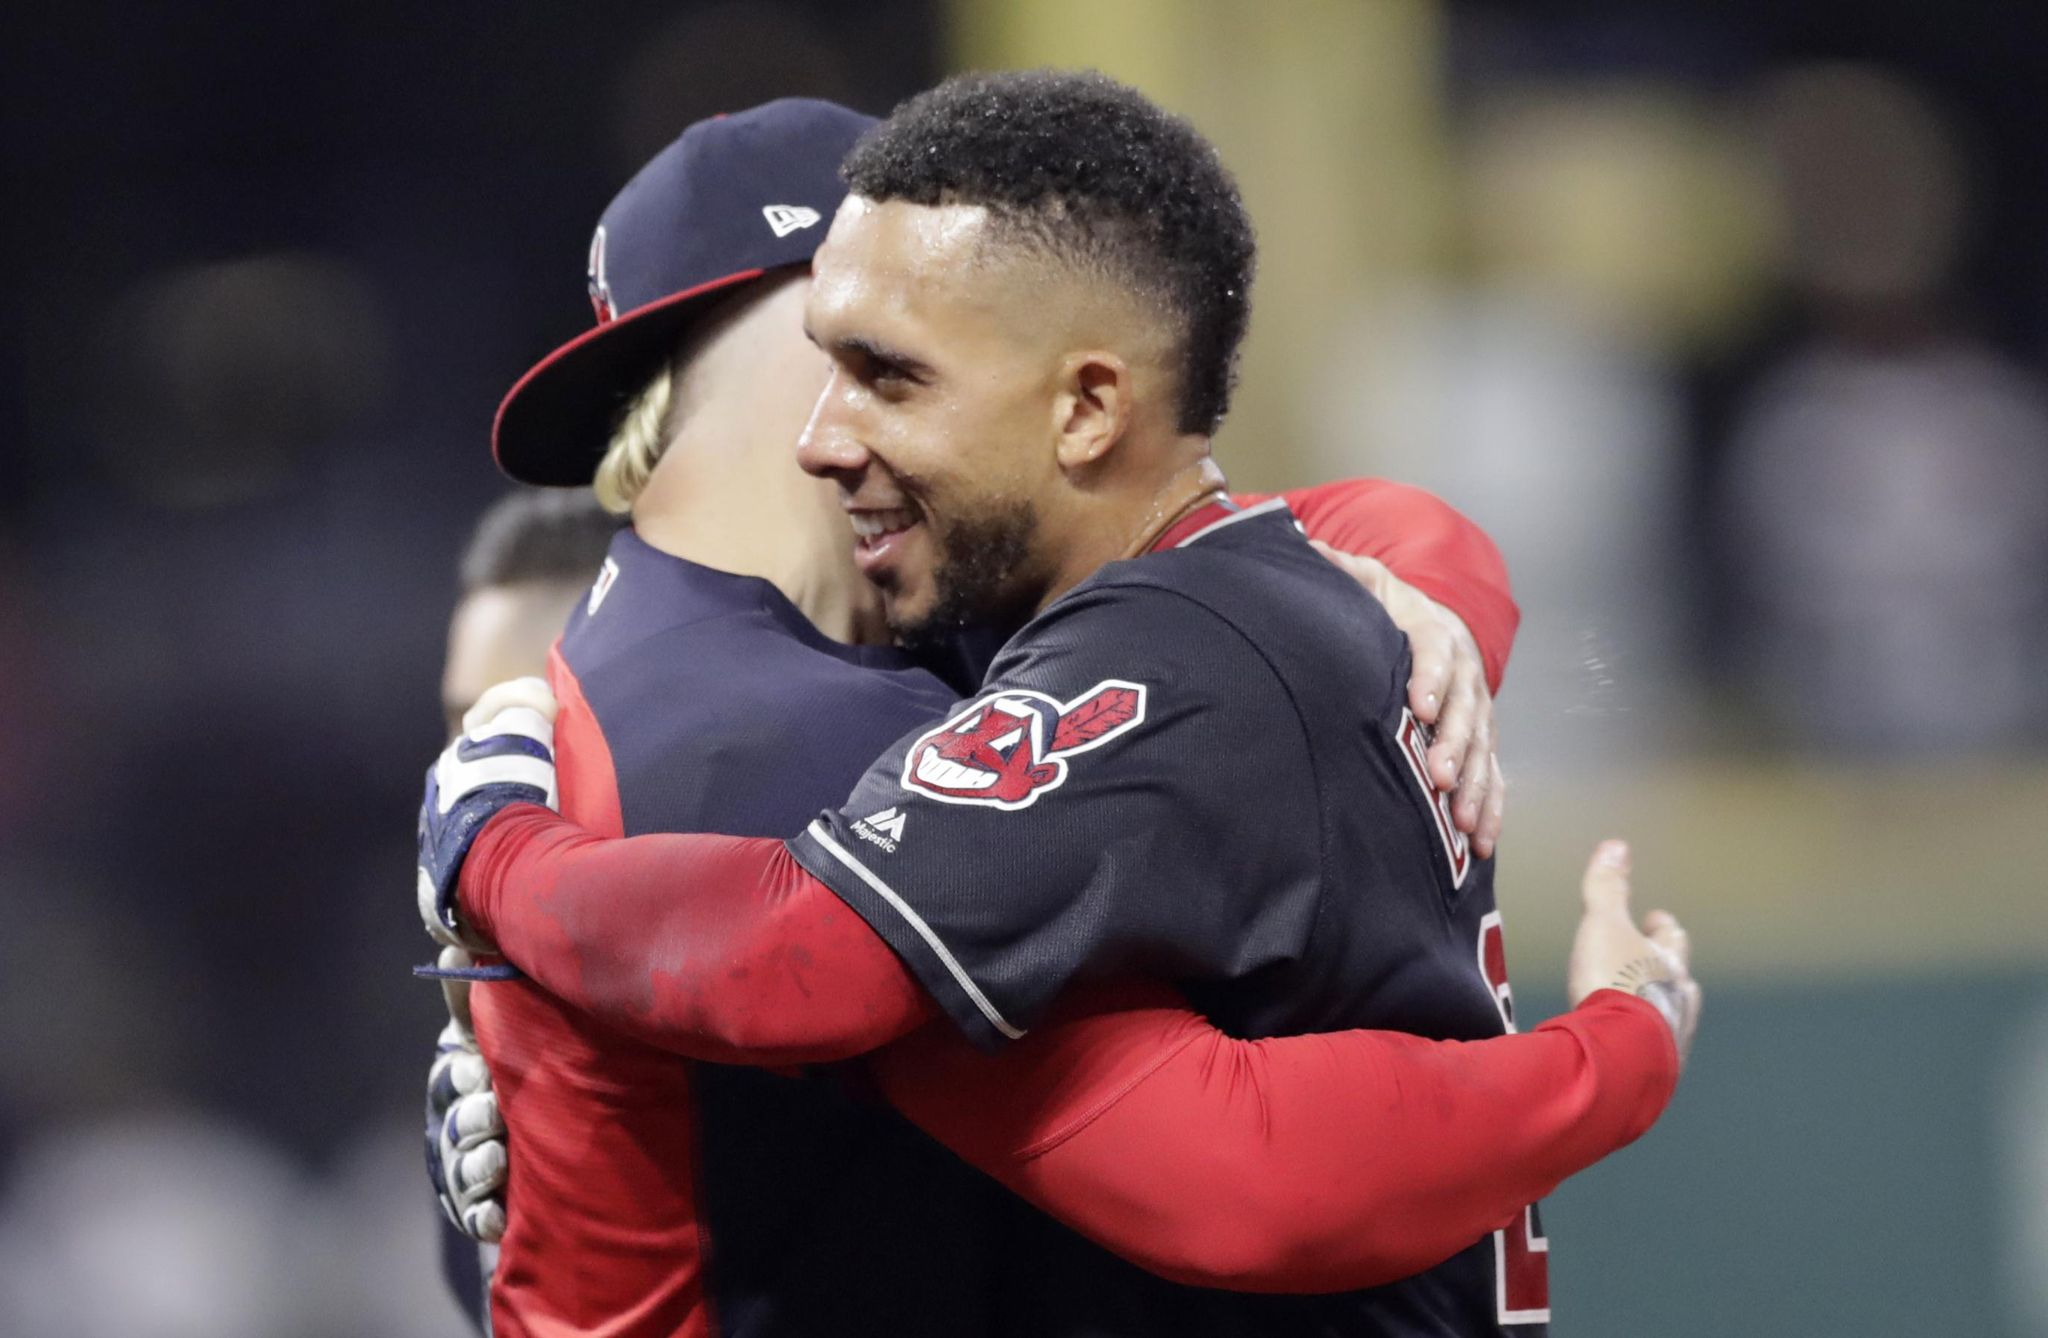 Red_sox_indians_baseball_71160_s2048x1338